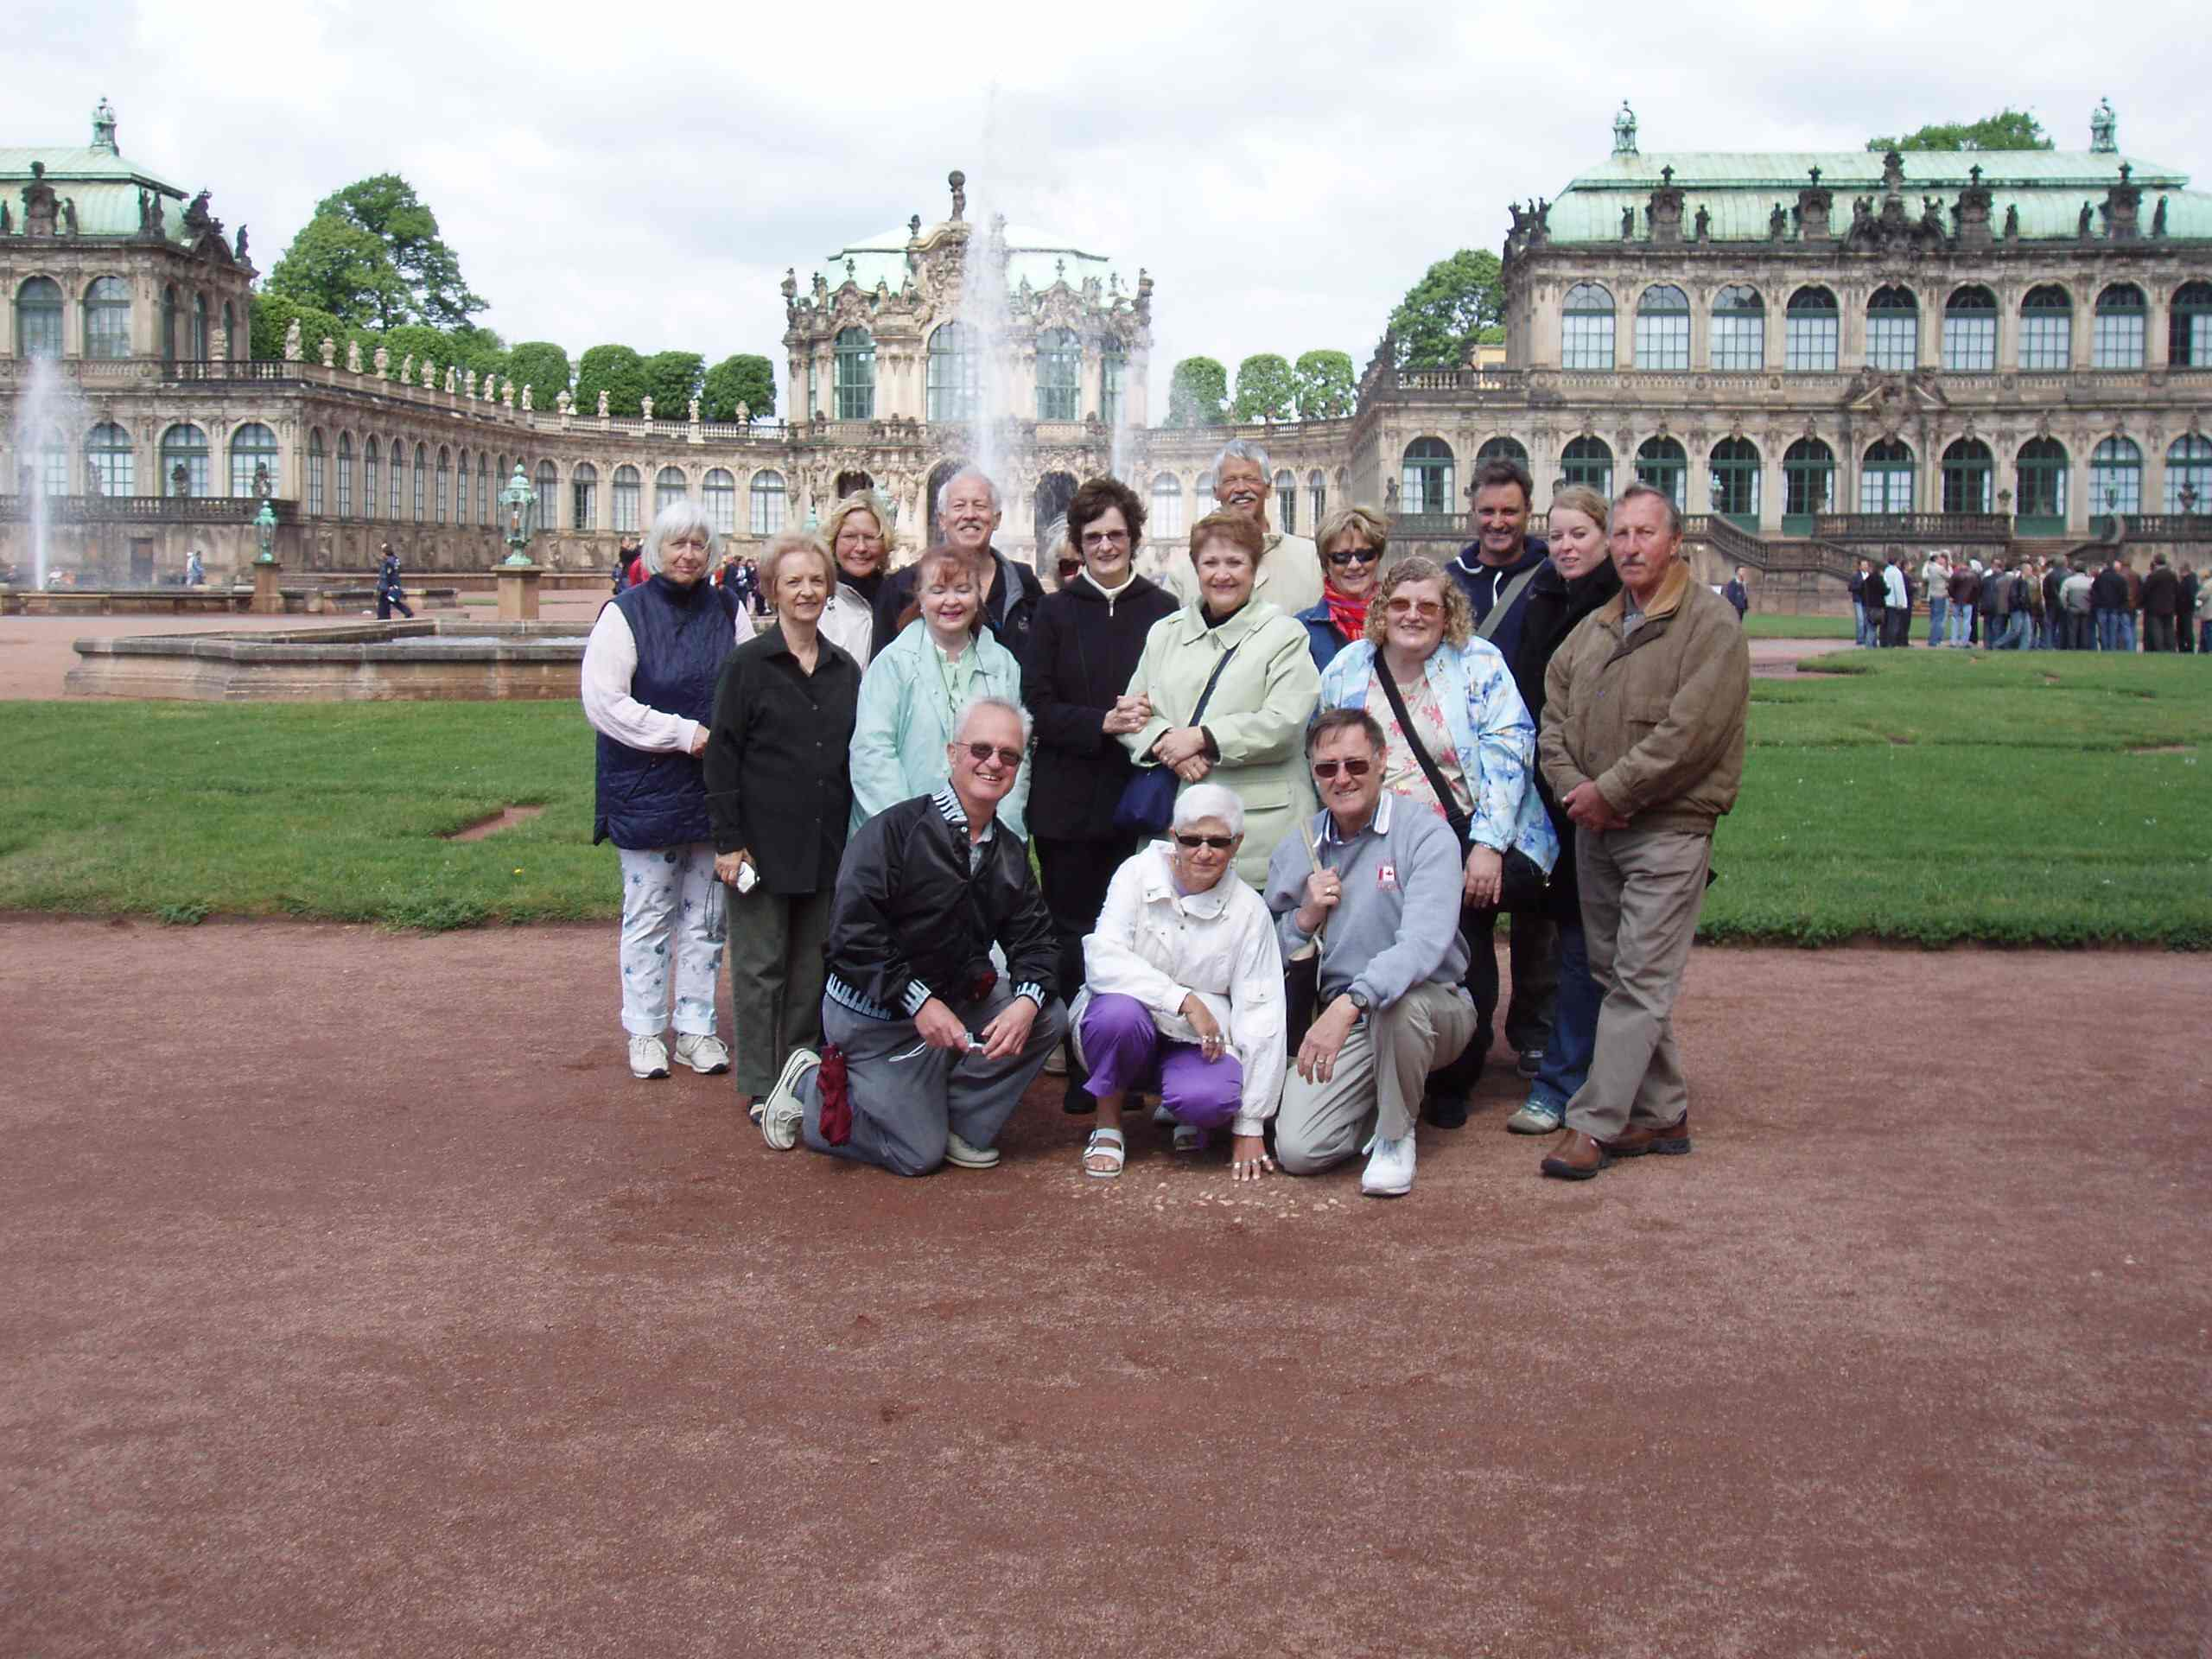 Canamger gang at the Zwinger